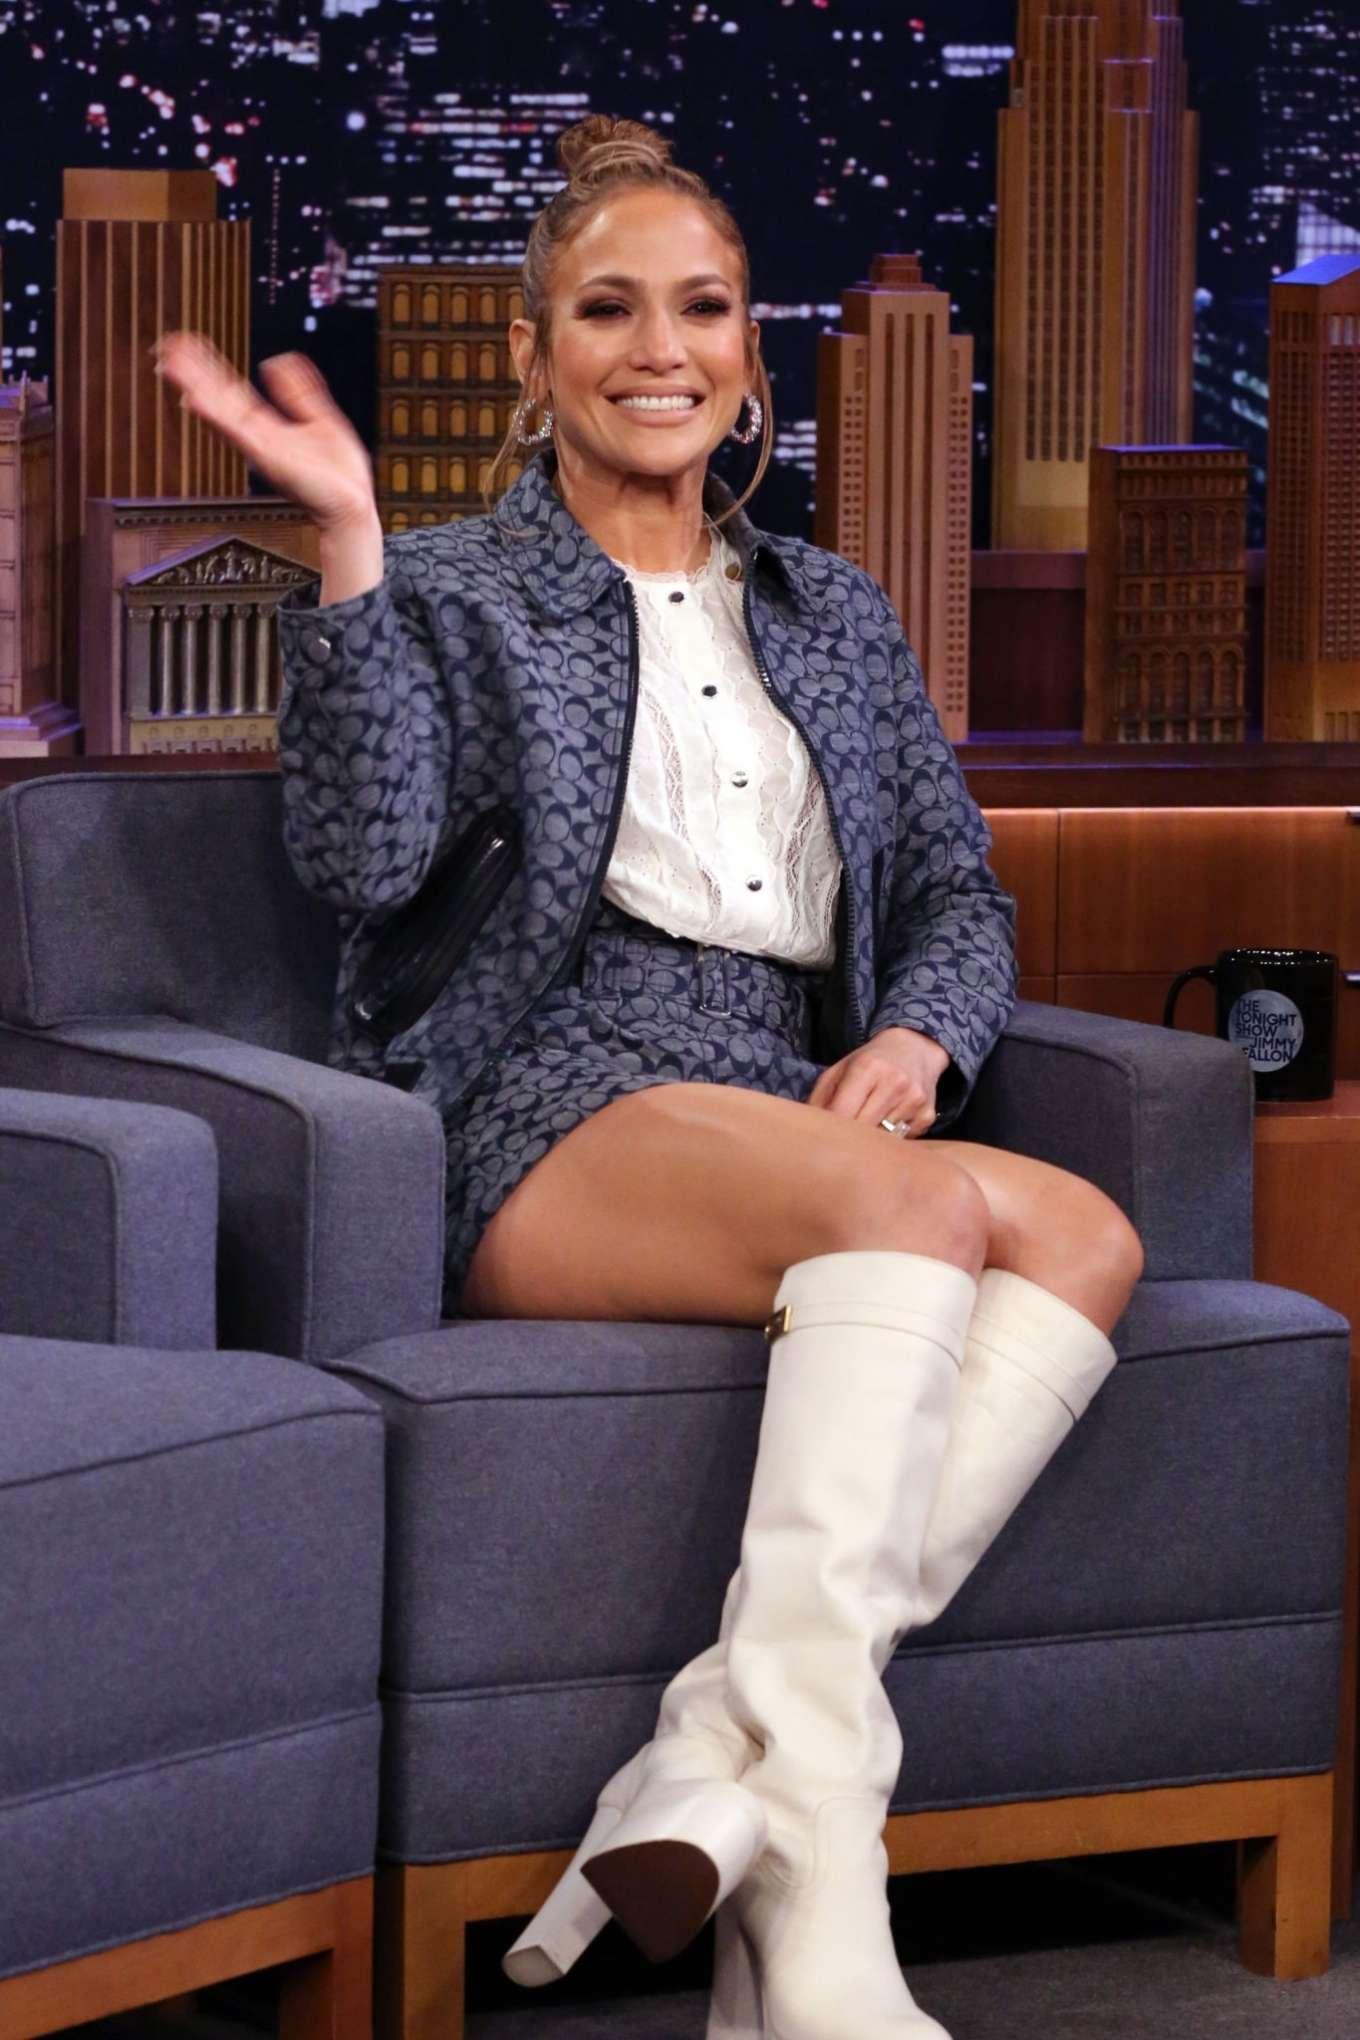 Jennifer Lopez - Pictured on 'The Tonight Show Starring Jimmy Fallon' in NYC